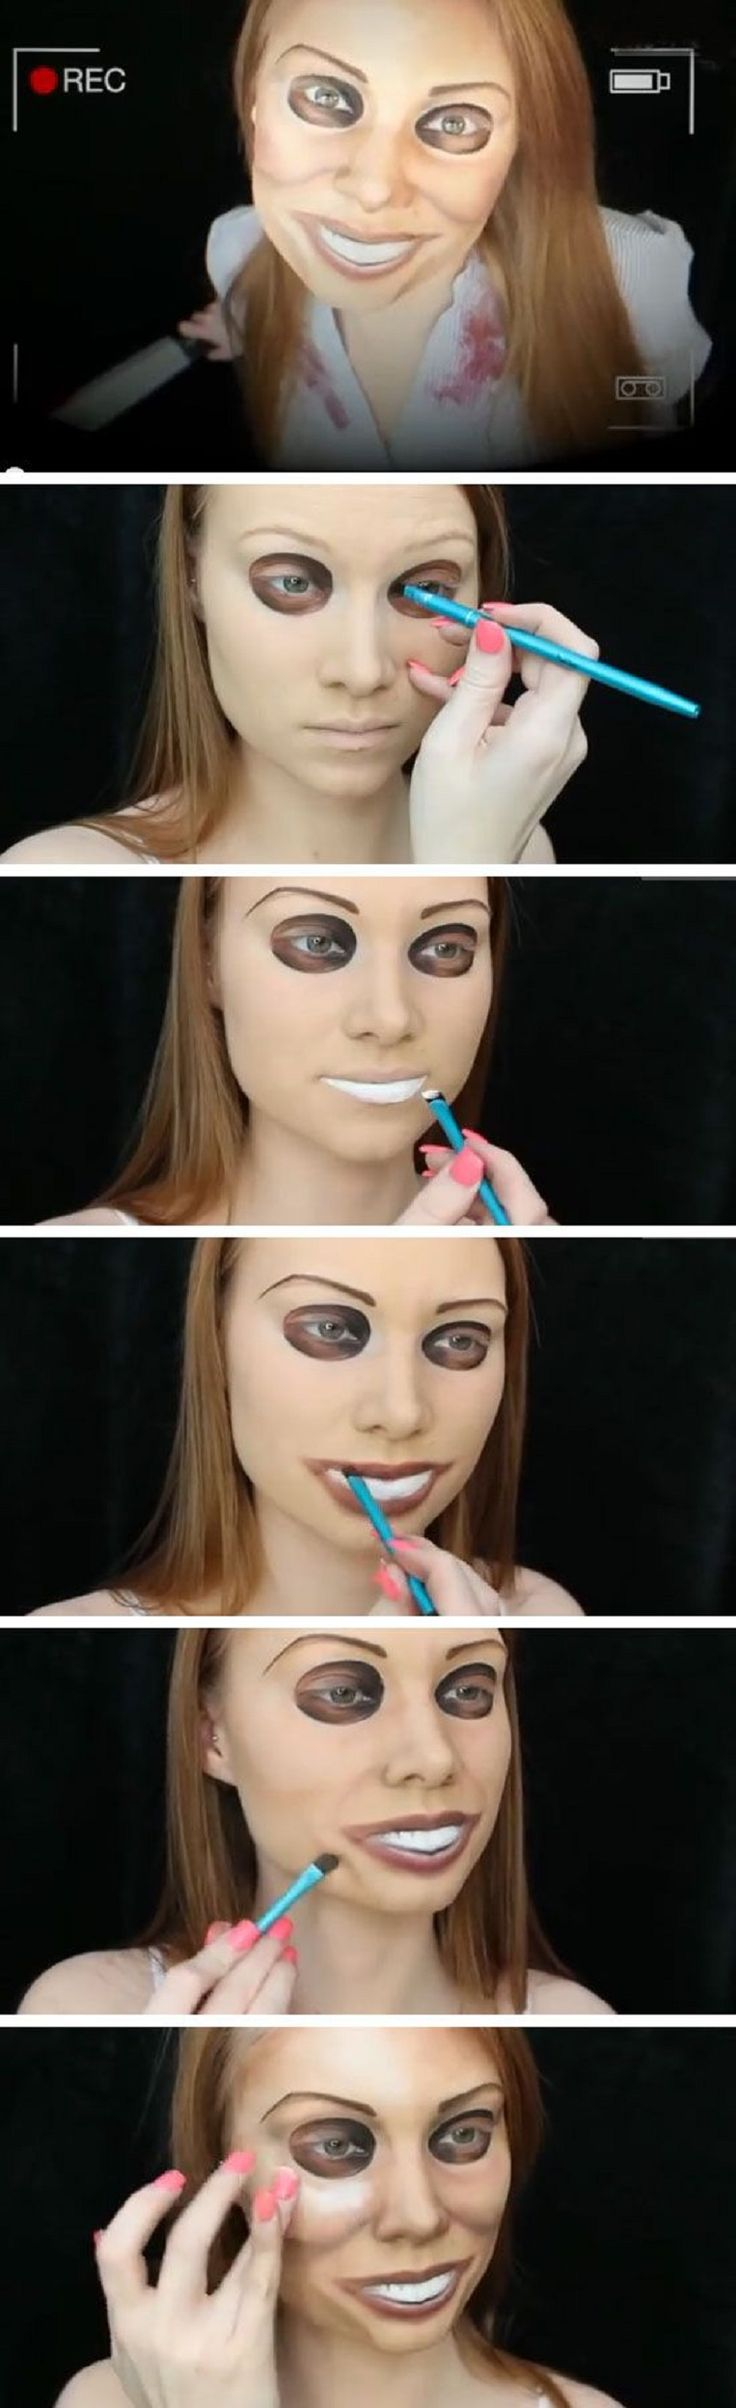 The Purge Makeup Tutorial - 12 Best DIY Halloween Makeup Tutorials - GleamItUp